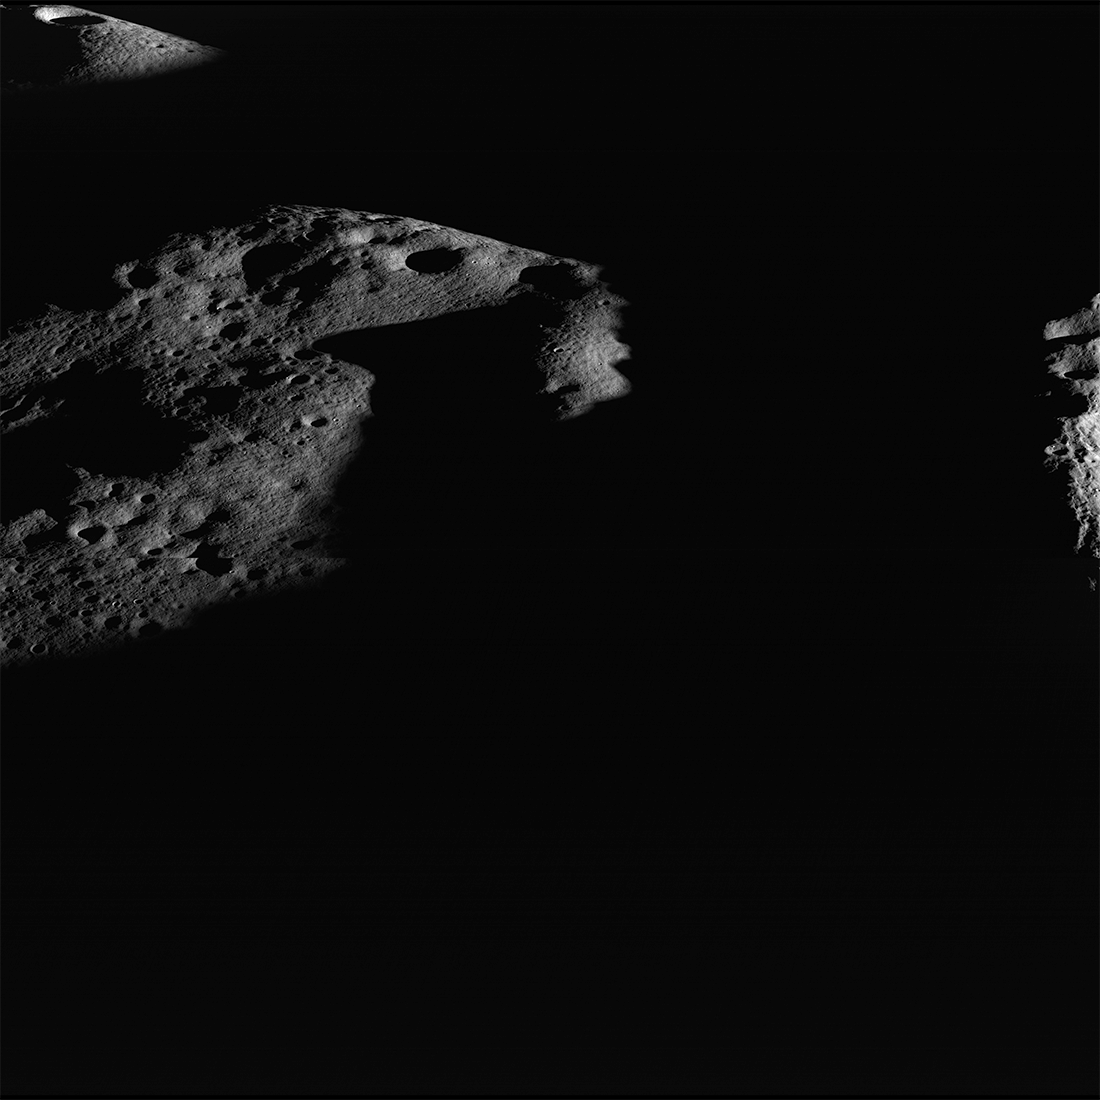 Image of illuminated peaks near the rim of Shackleton crater